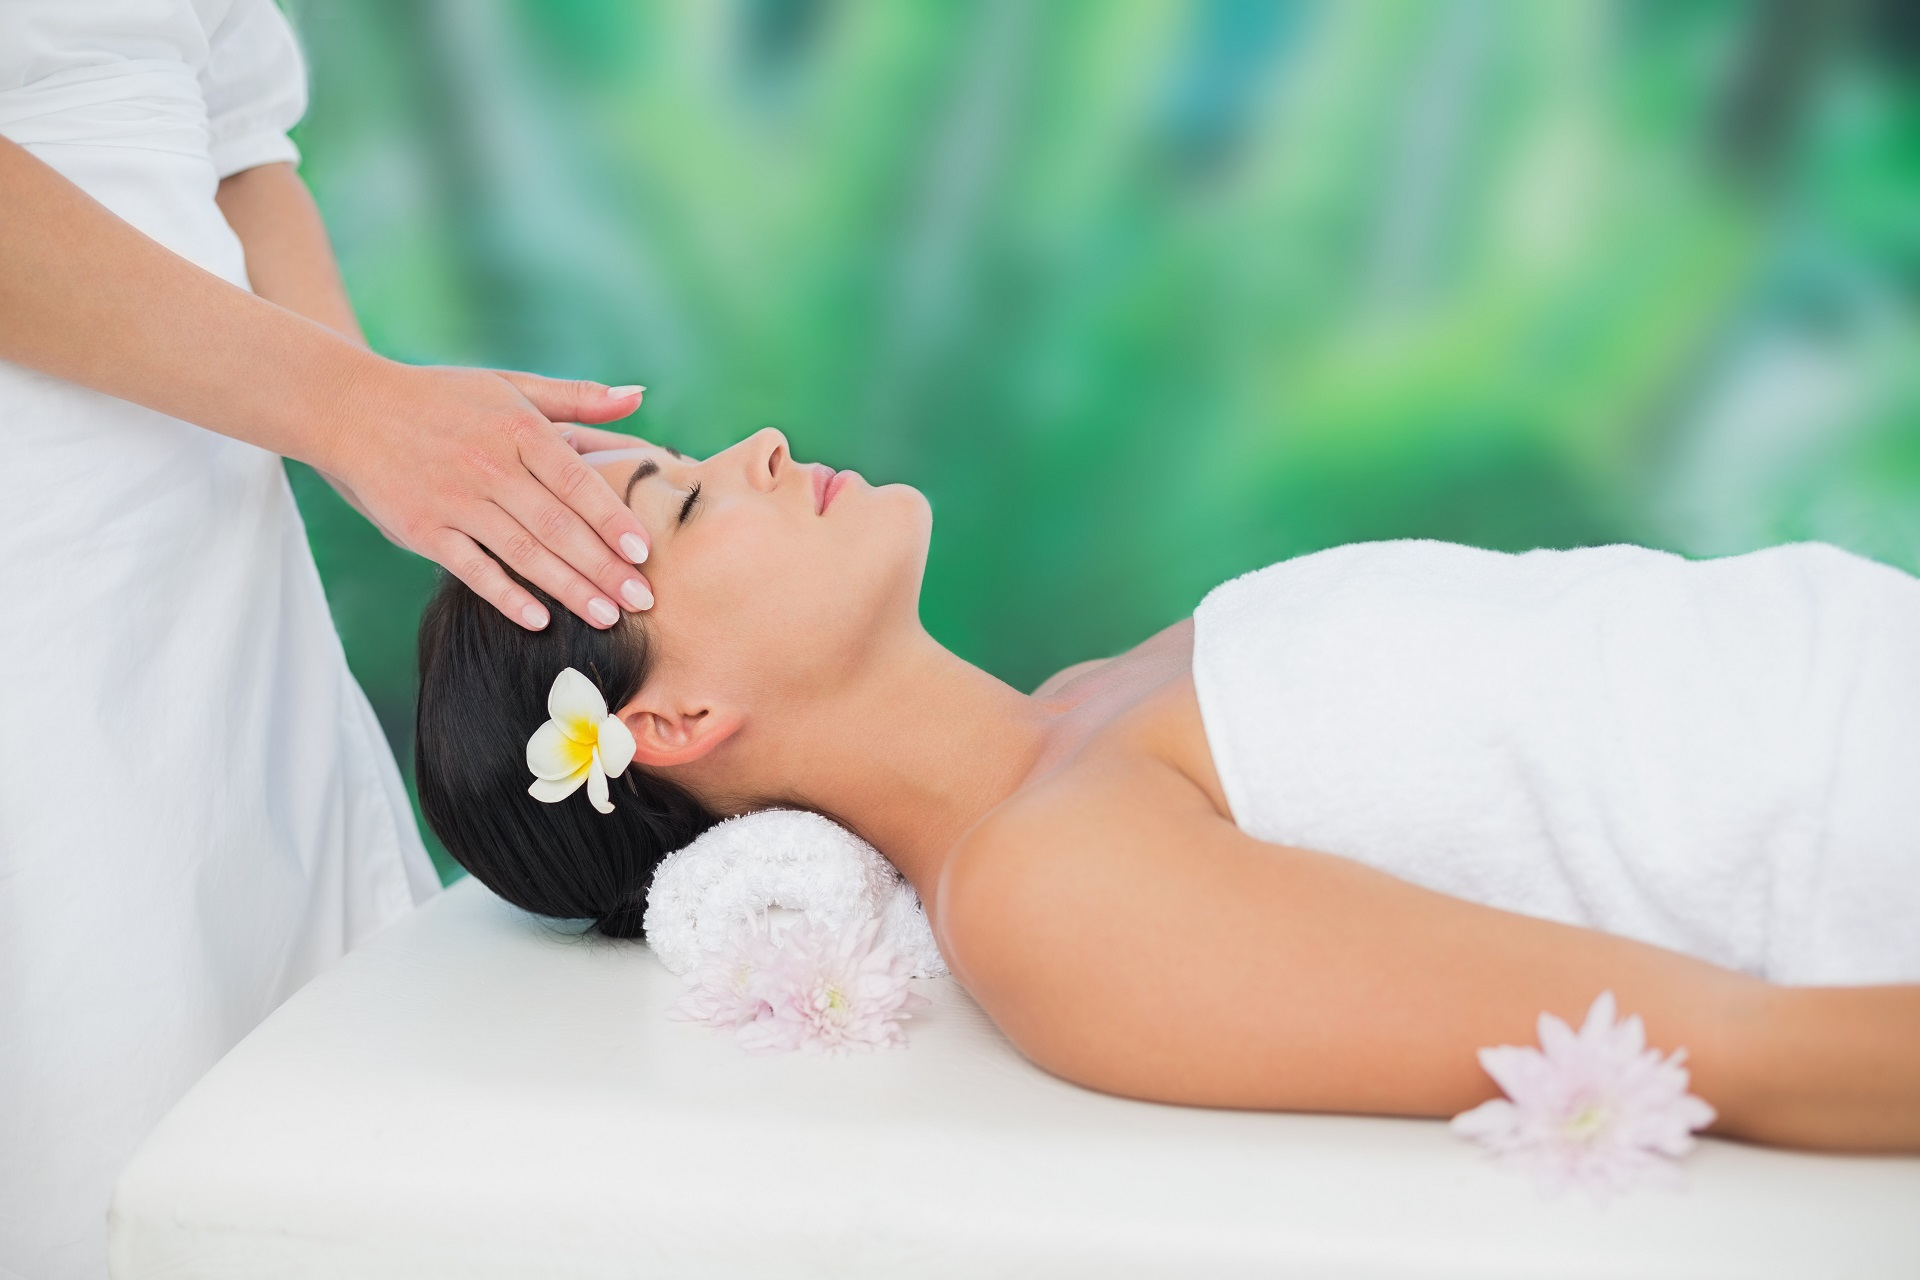 Reasons To Explore Registered Massage Therapy